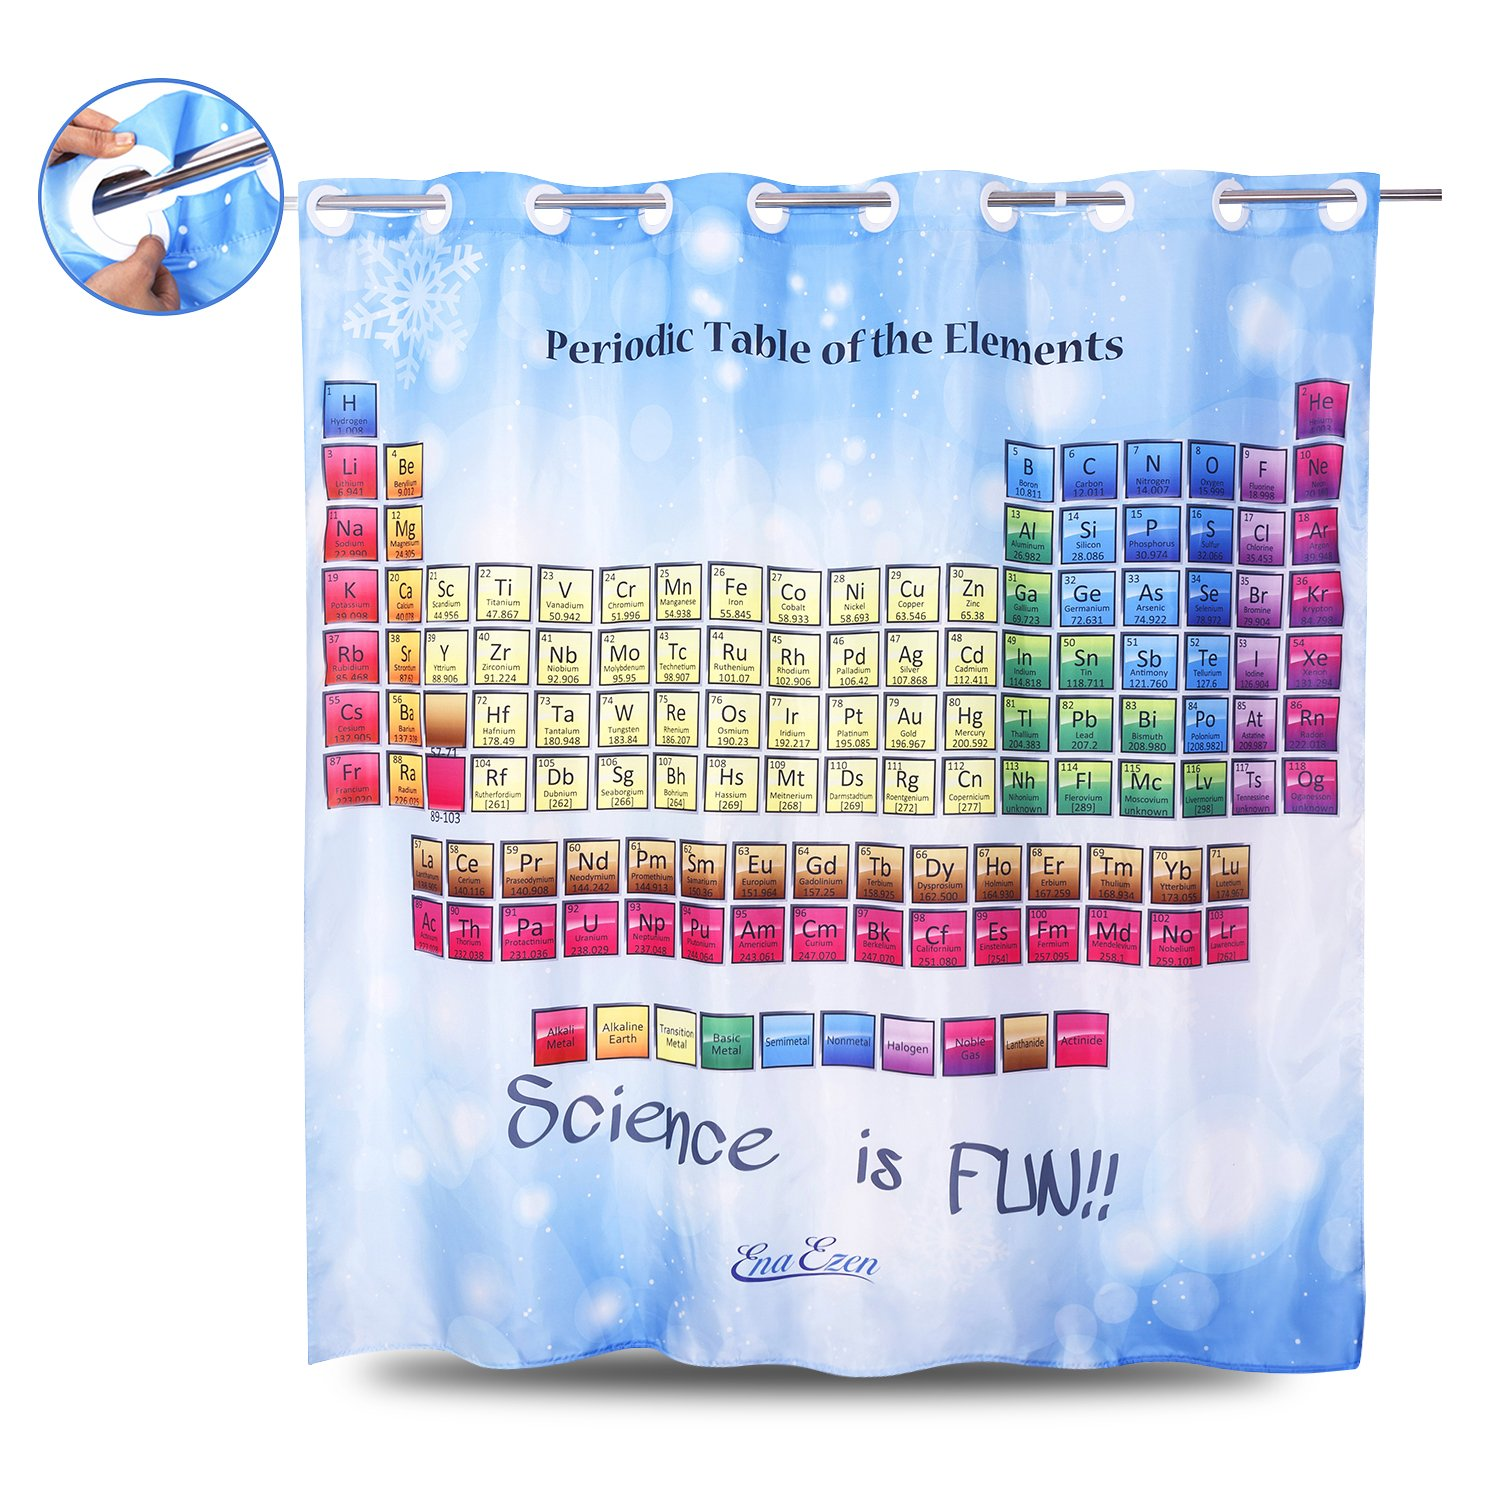 Periodic Table Shower Curtain Blue - EnaEzen Educational Fabric Shower Curtains Hookless (No Need Hooks or Rings) for Bathroom Polyester 71 x 71 inches